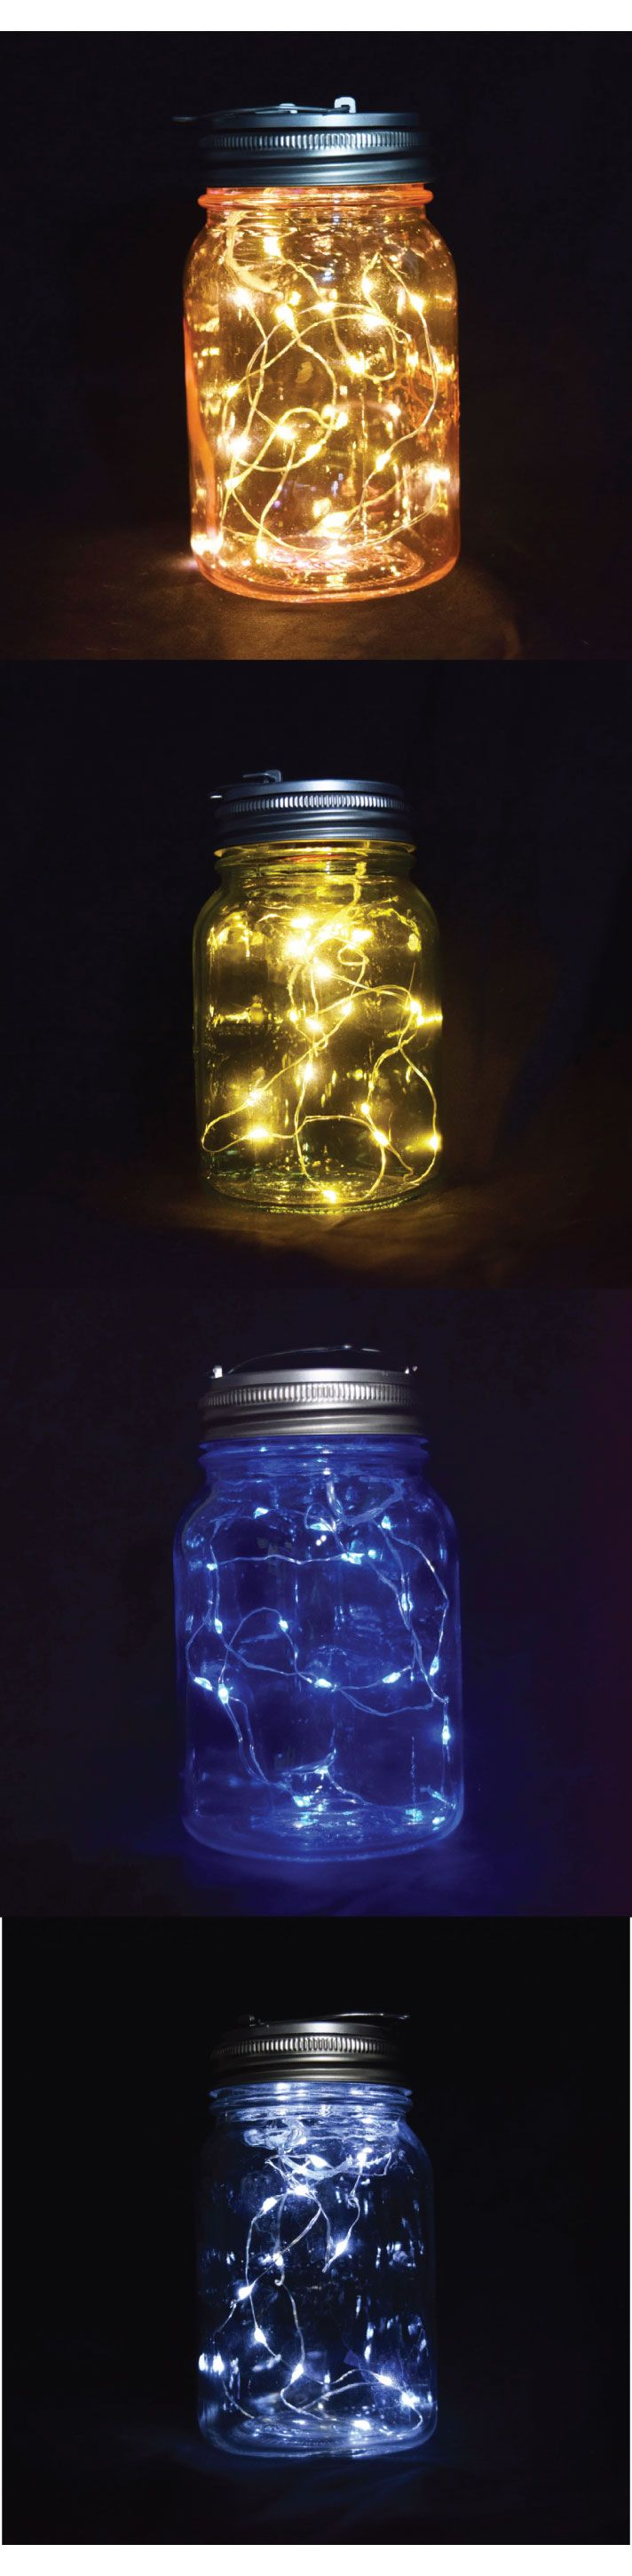 mason jar lights kit! great for weddings. These can be your table-top centerpiece or your hanging decoration. Several colors to choose from. #masonjar #weddings #lights